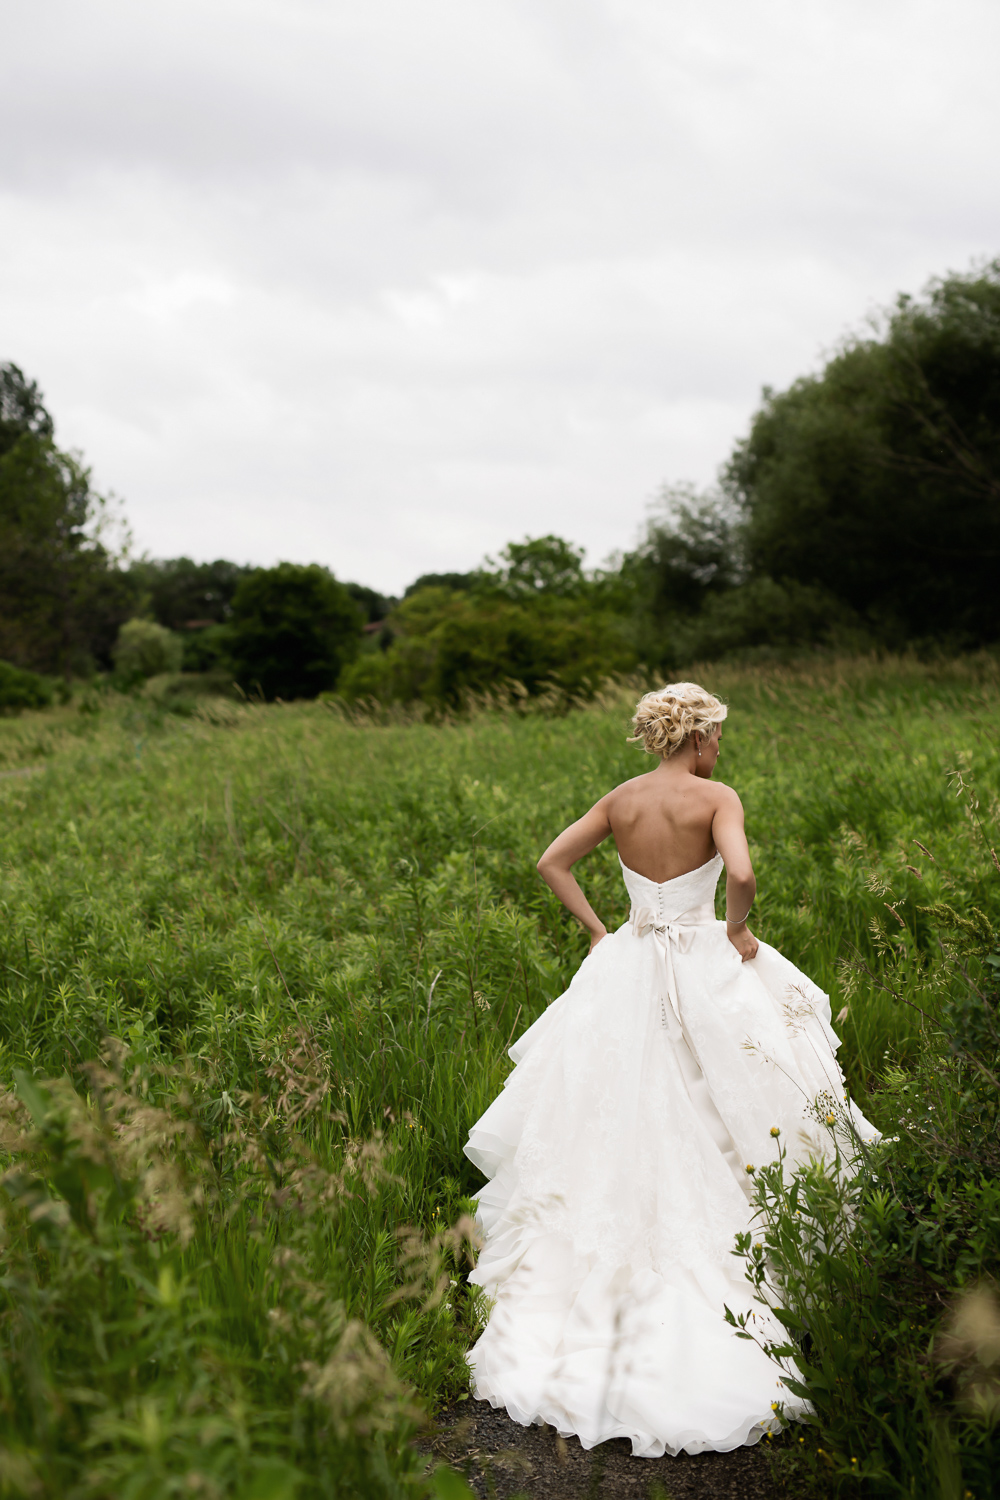 clewell minneapolis wedding photographer-22020330017323365.jpg